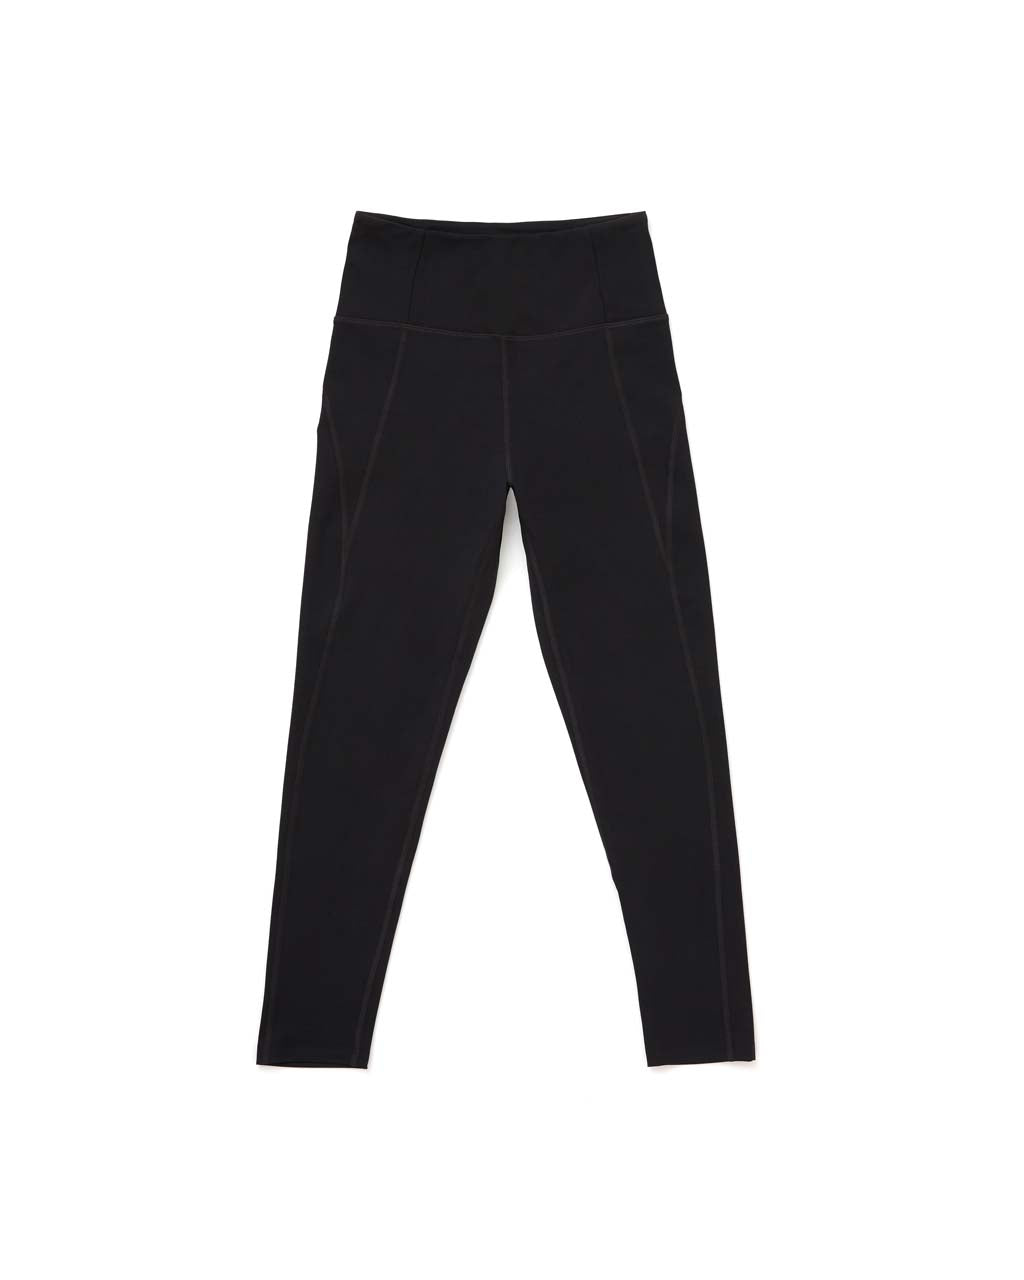 Front view of leggings lying flat.